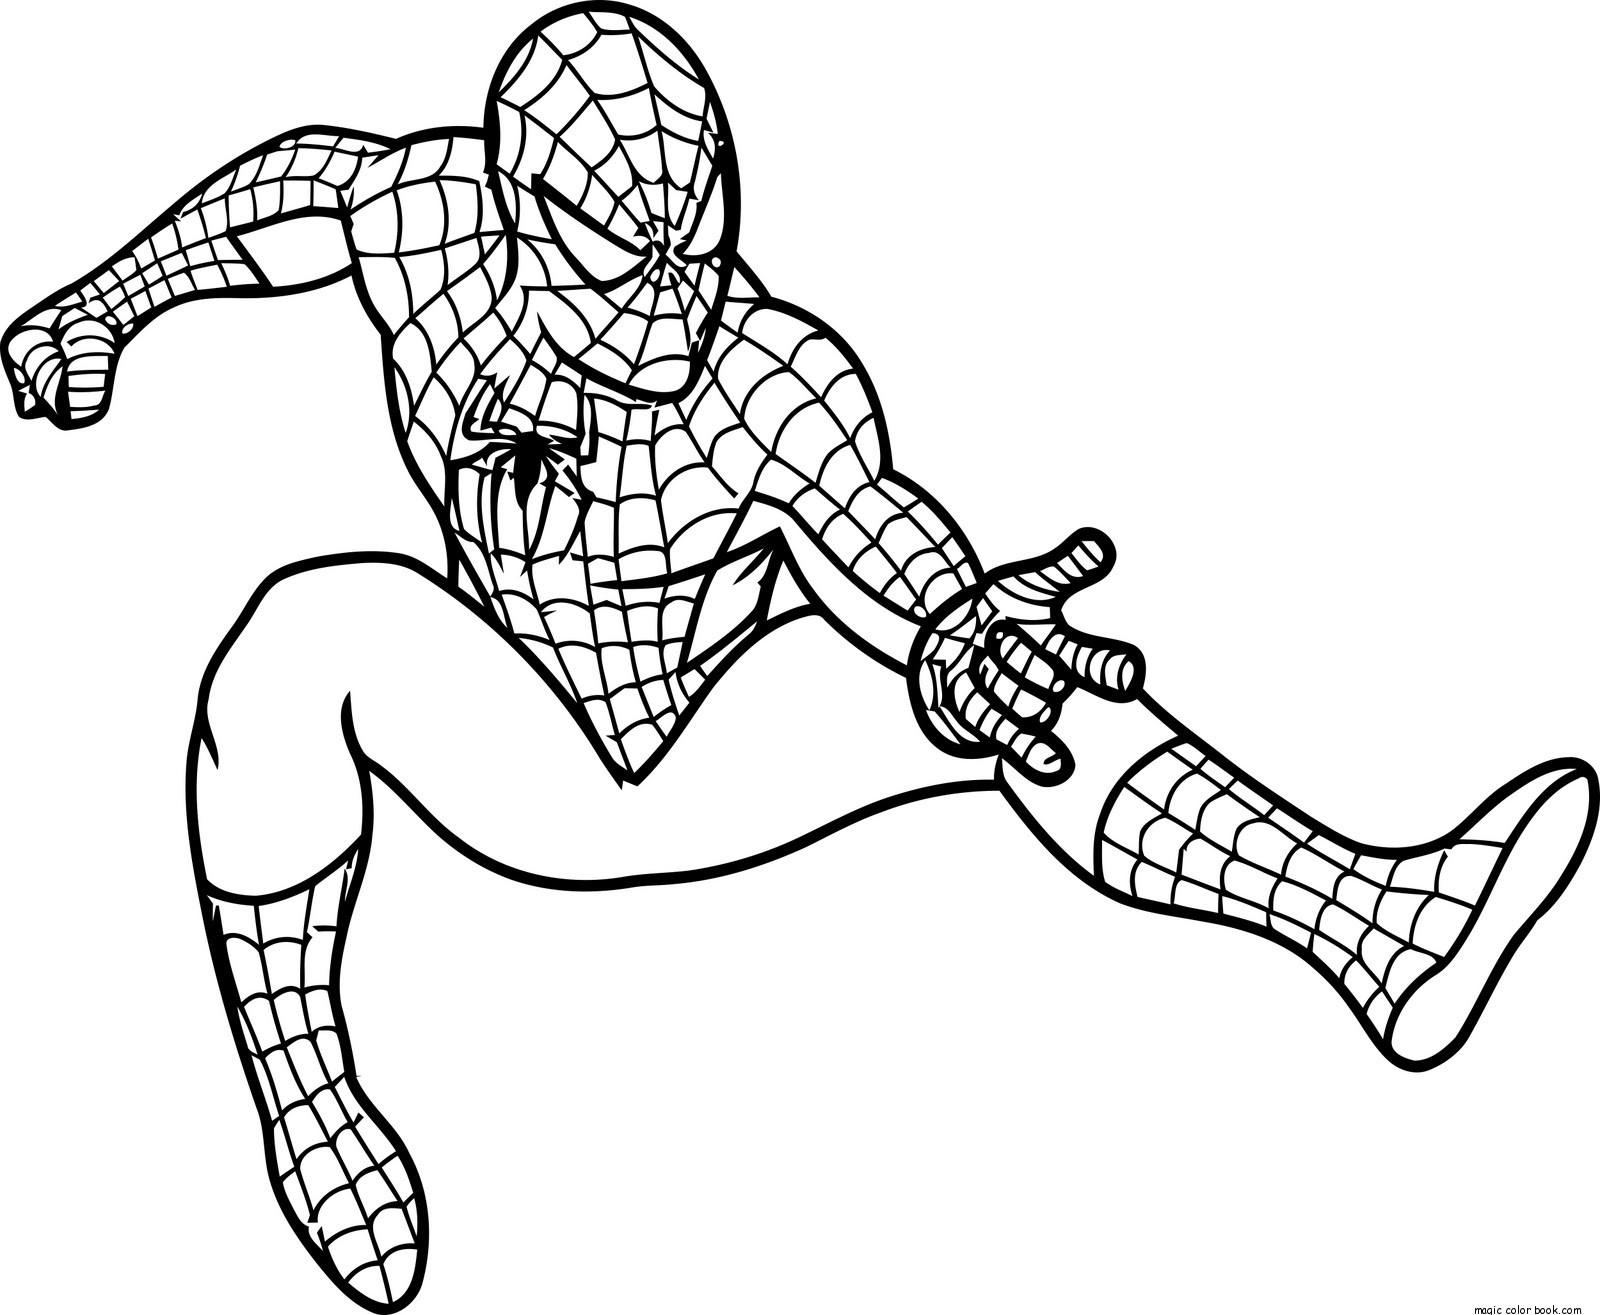 spiderman-coloring-pages-printable-movie-superhero